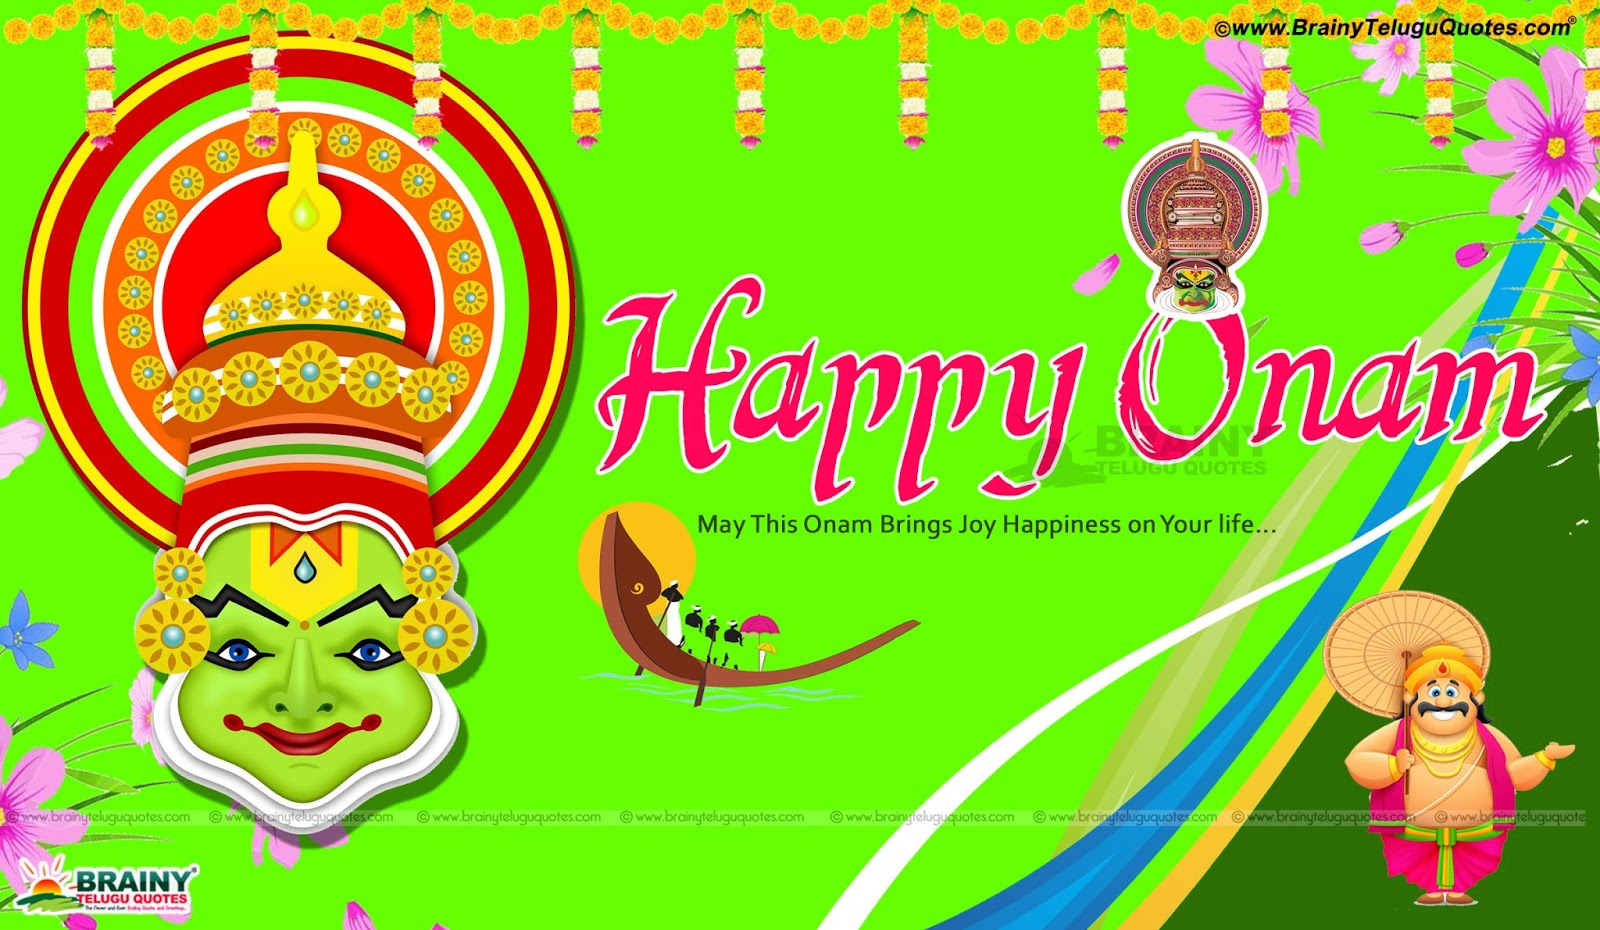 Onam ashamshagal in malayalam and best onam hd wallpapers onam here is beautiful quotes and pictures about onam awesome quotations and thoughts in malayalamonam kristyandbryce Image collections